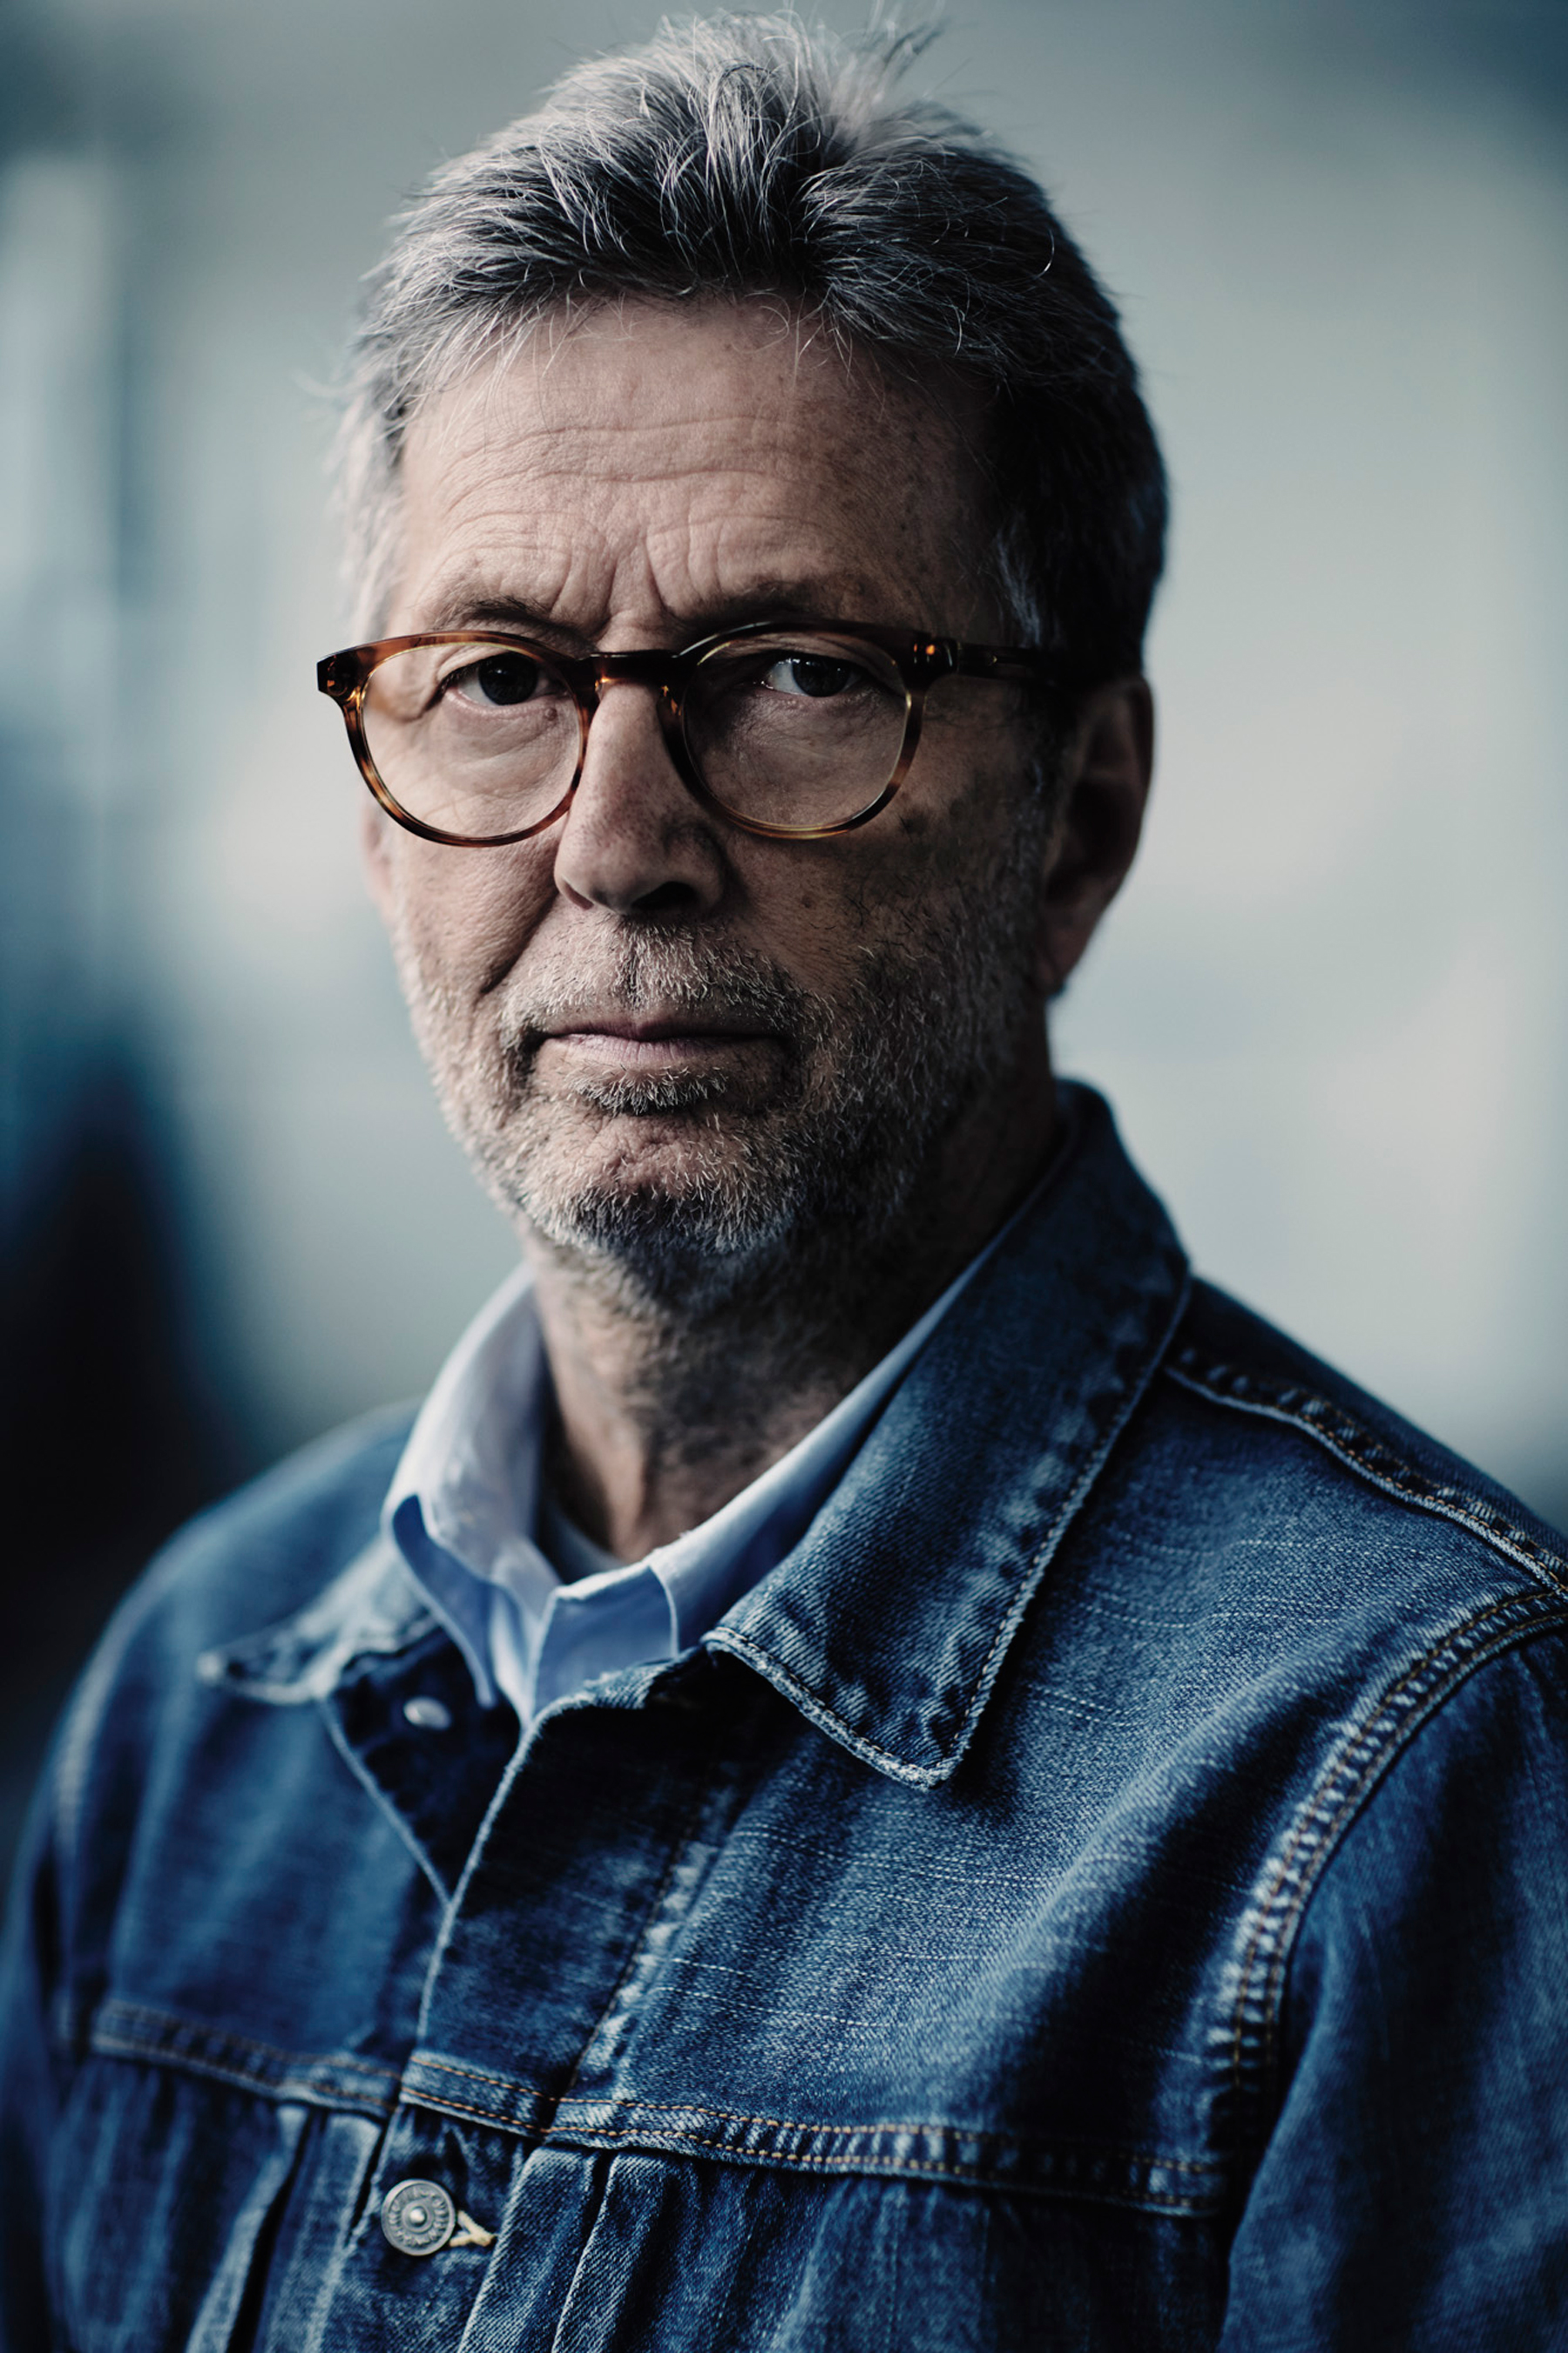 Clapton at the Crossroads: 'The Guitar Is in Safe Hands'